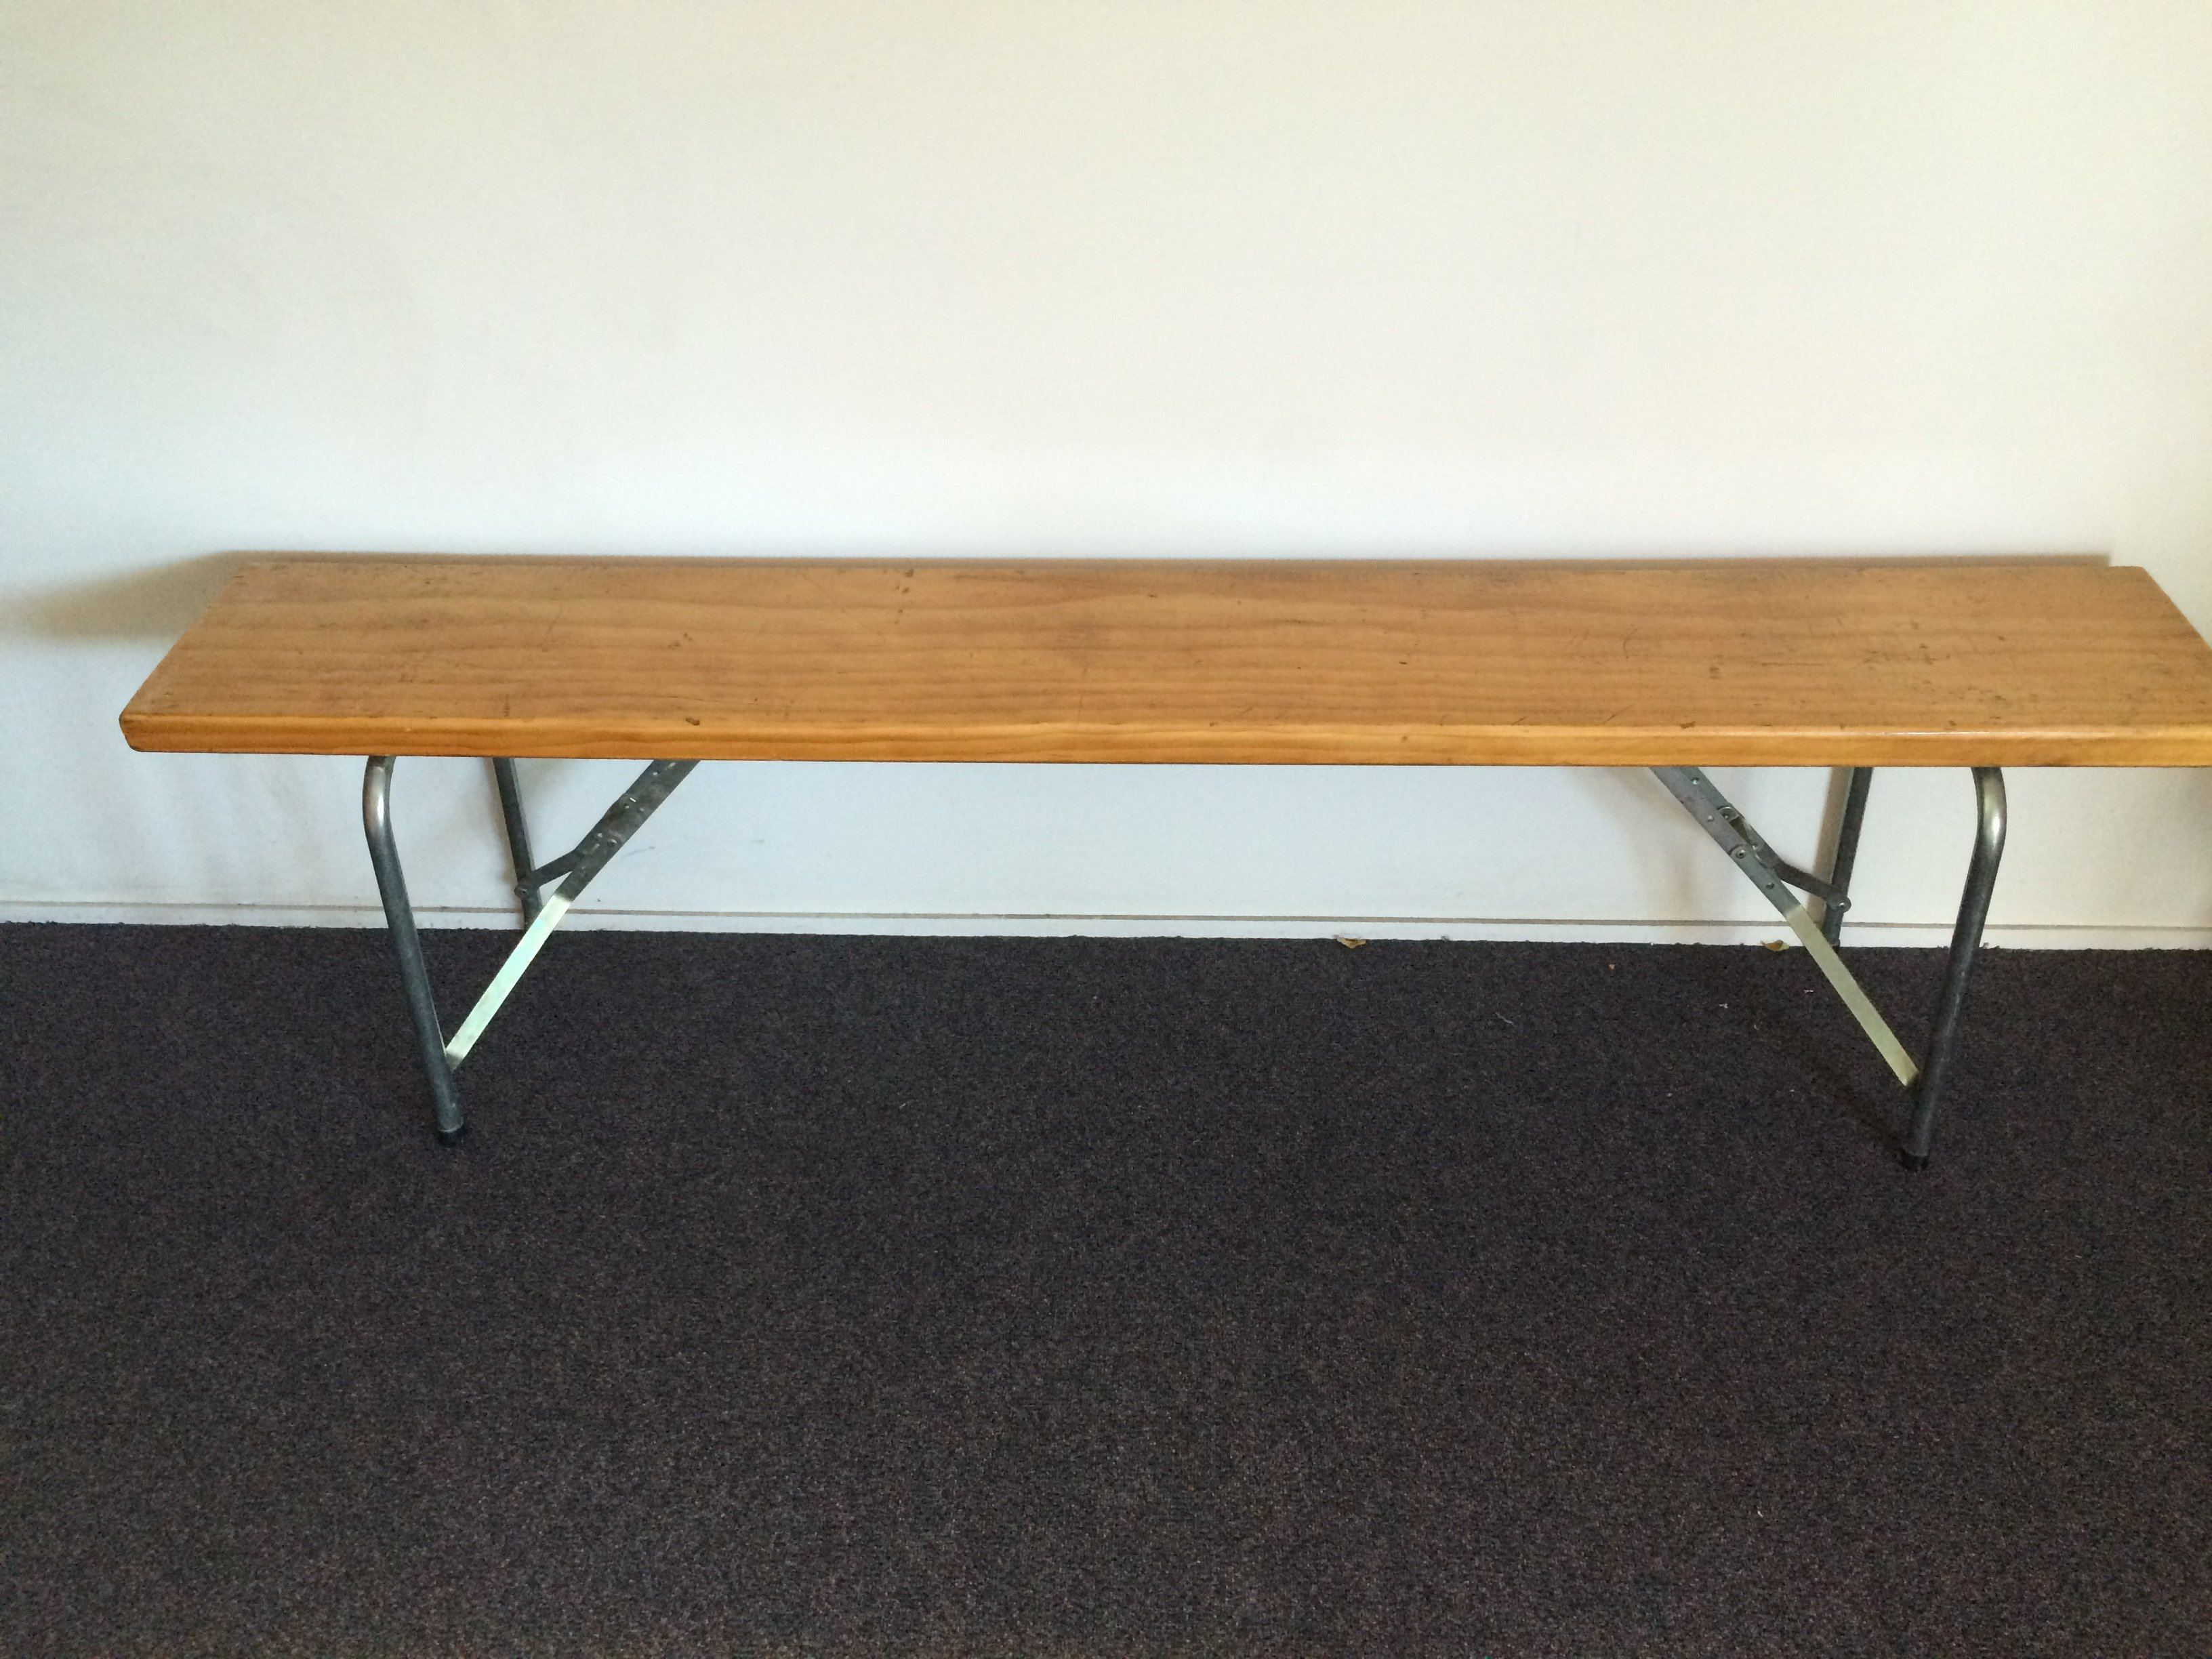 Wooden Form Bench Seat